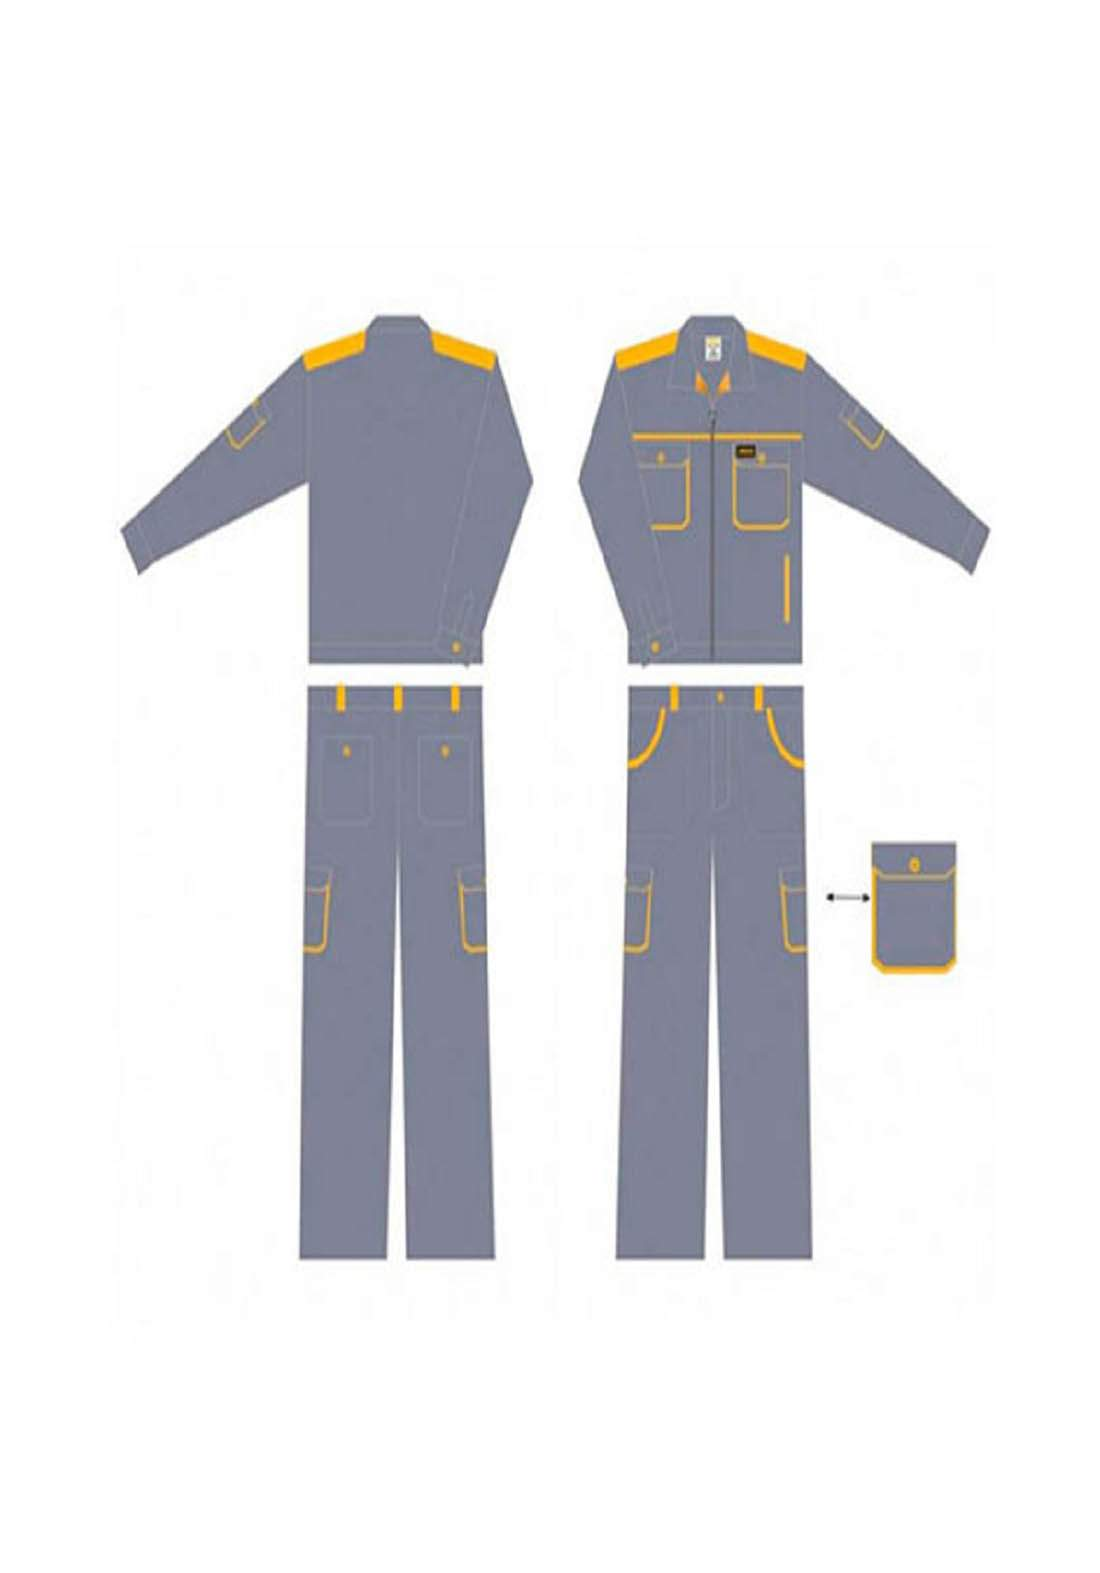 Ingco WUS01150 Two-piece business suit بدلة عمل قطعتين